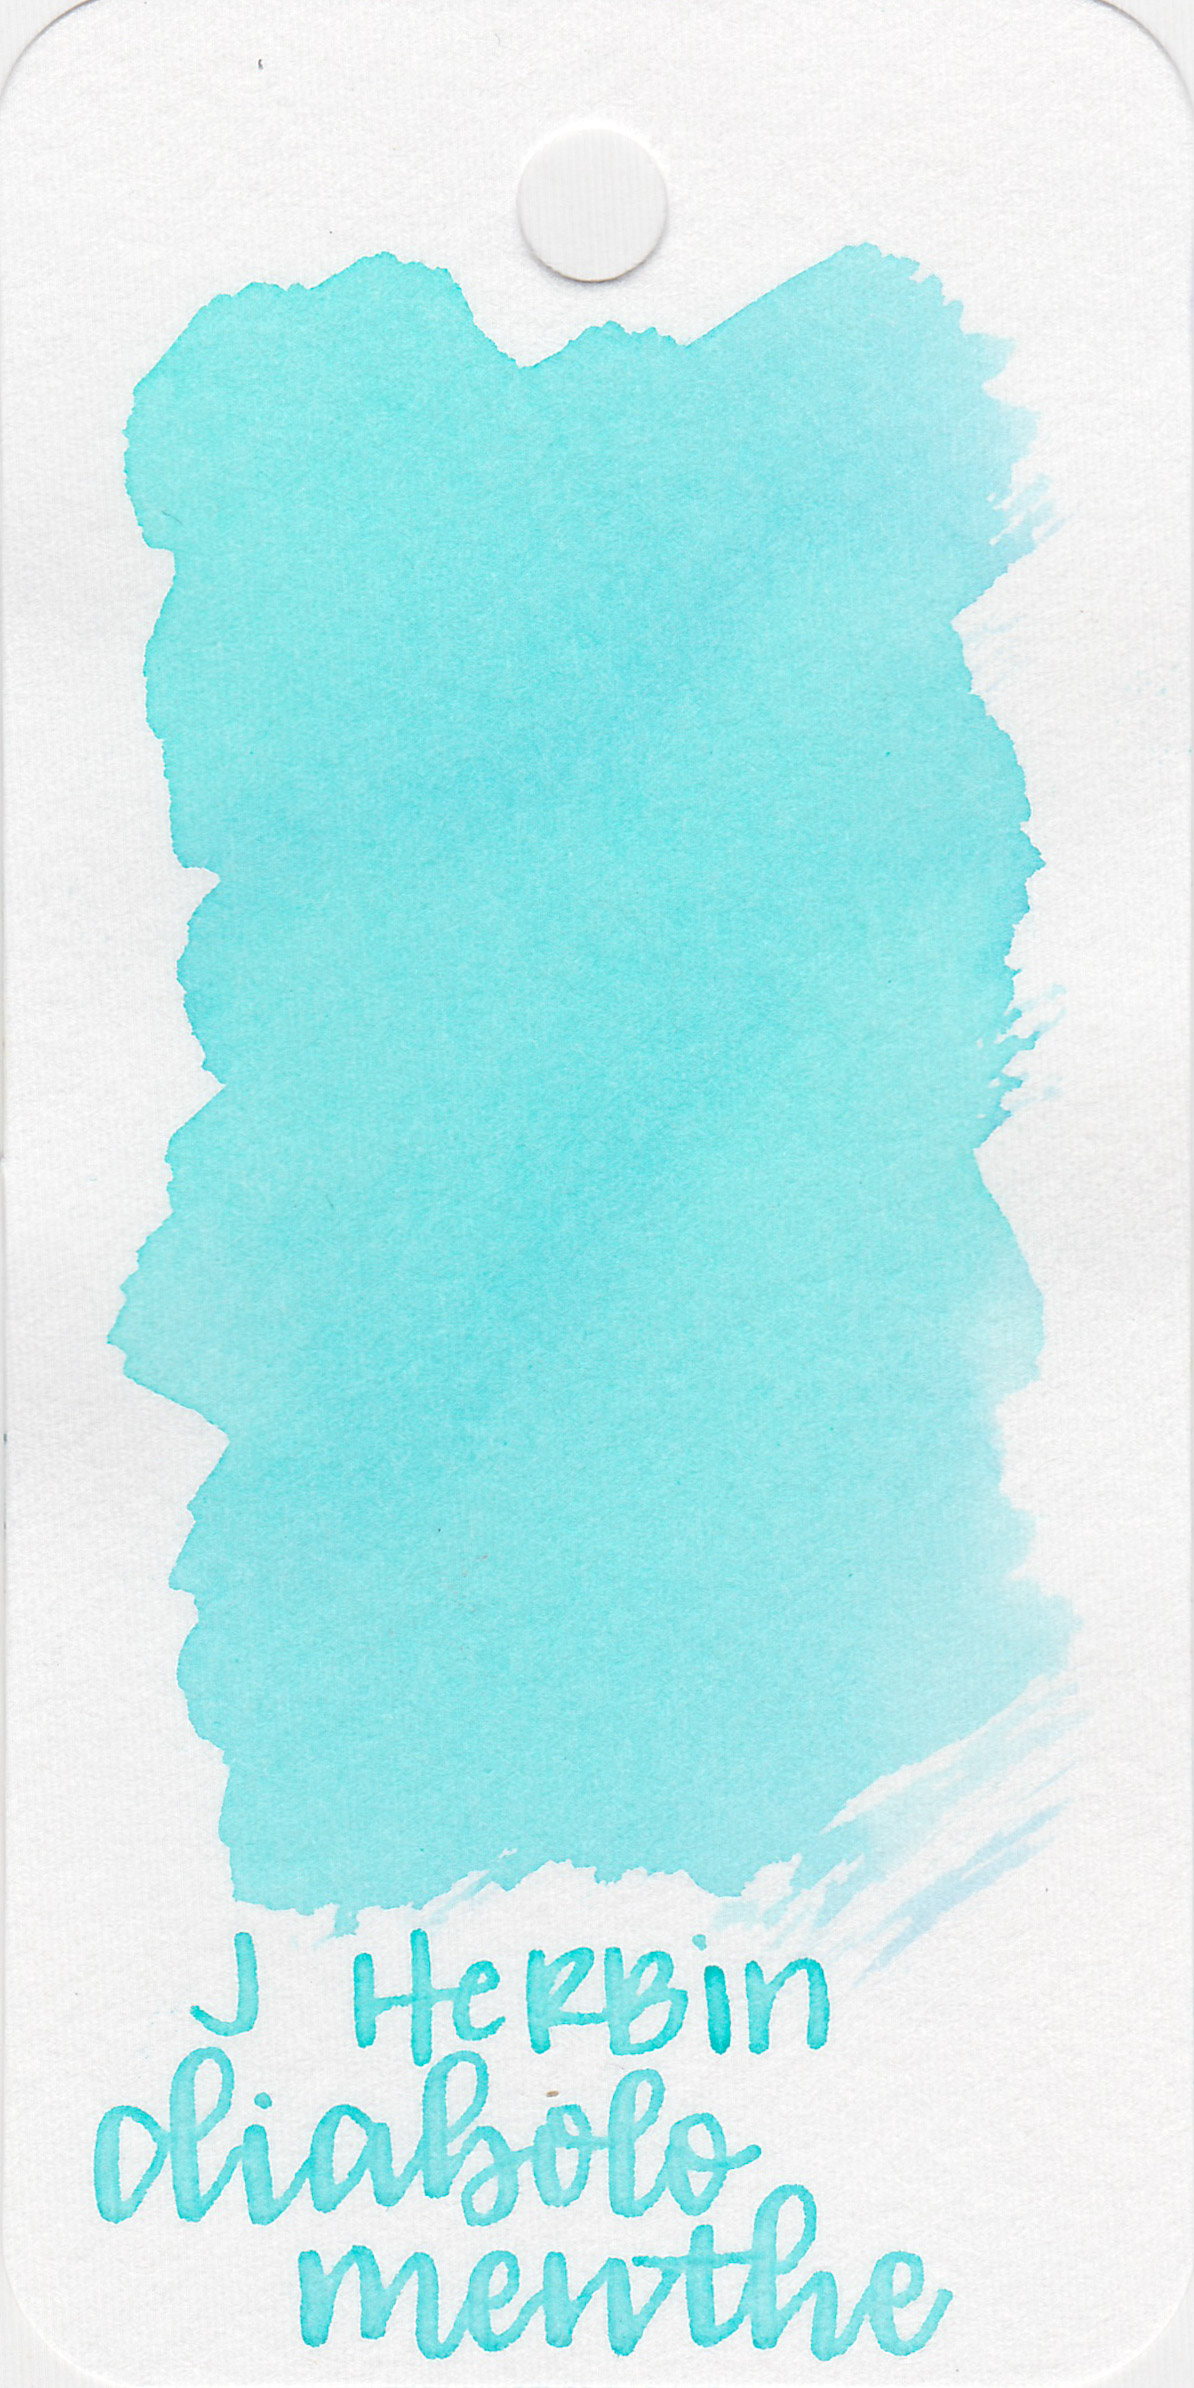 The color: - Diabolo Menthe is a very, very light blue.